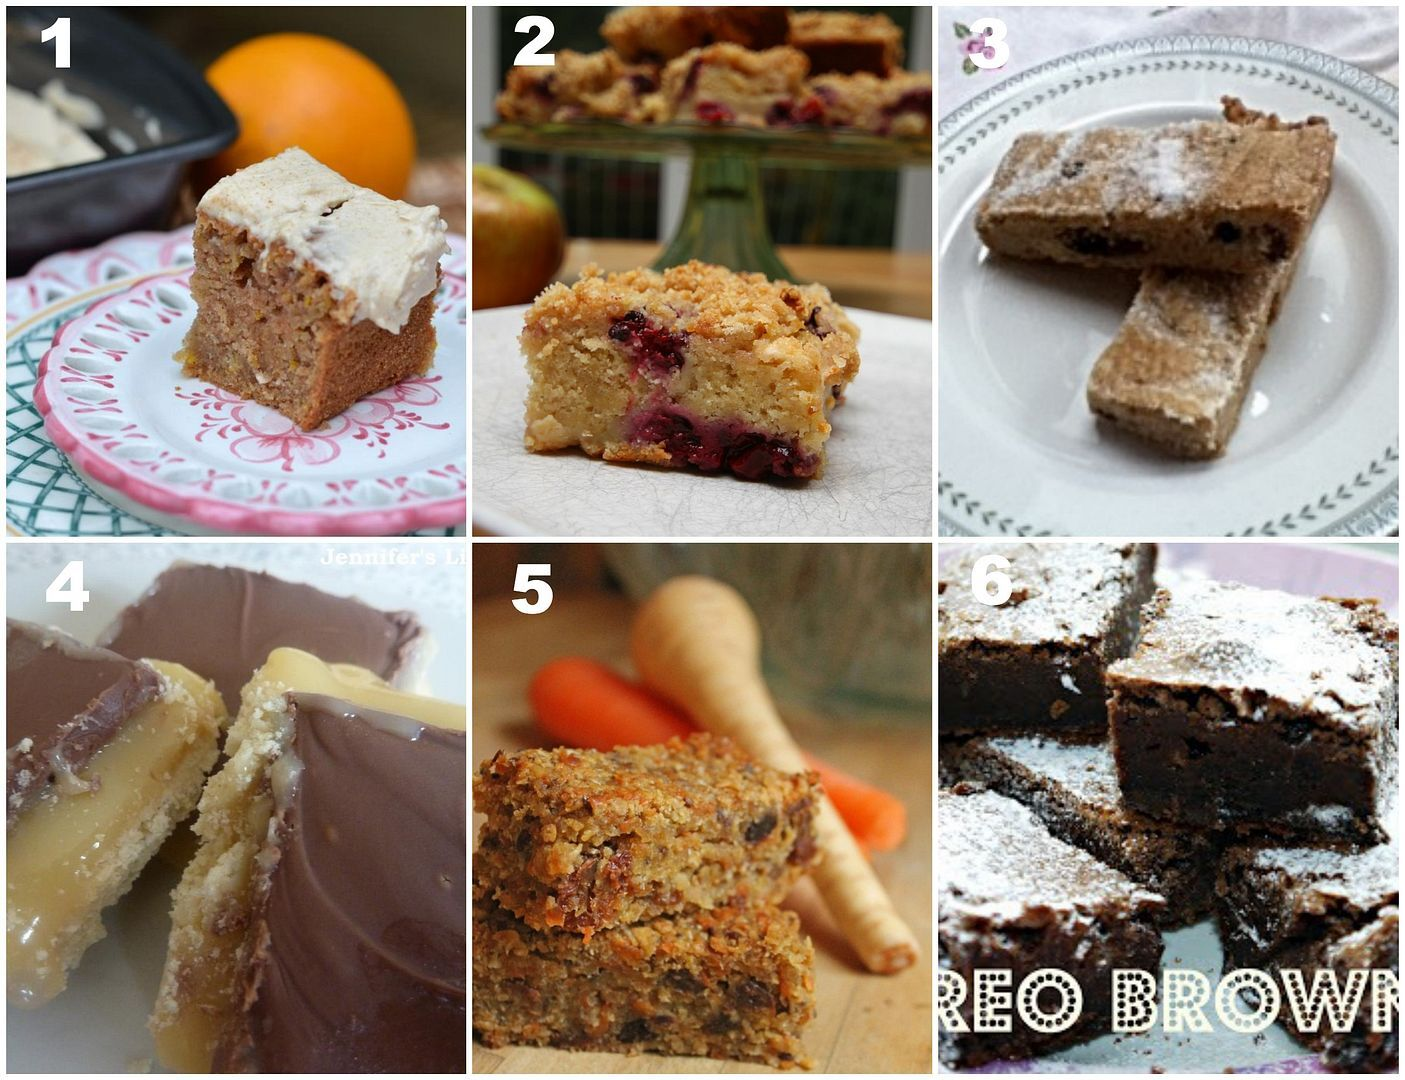 The Great Bloggers Bake Off - Week 5 Round Up